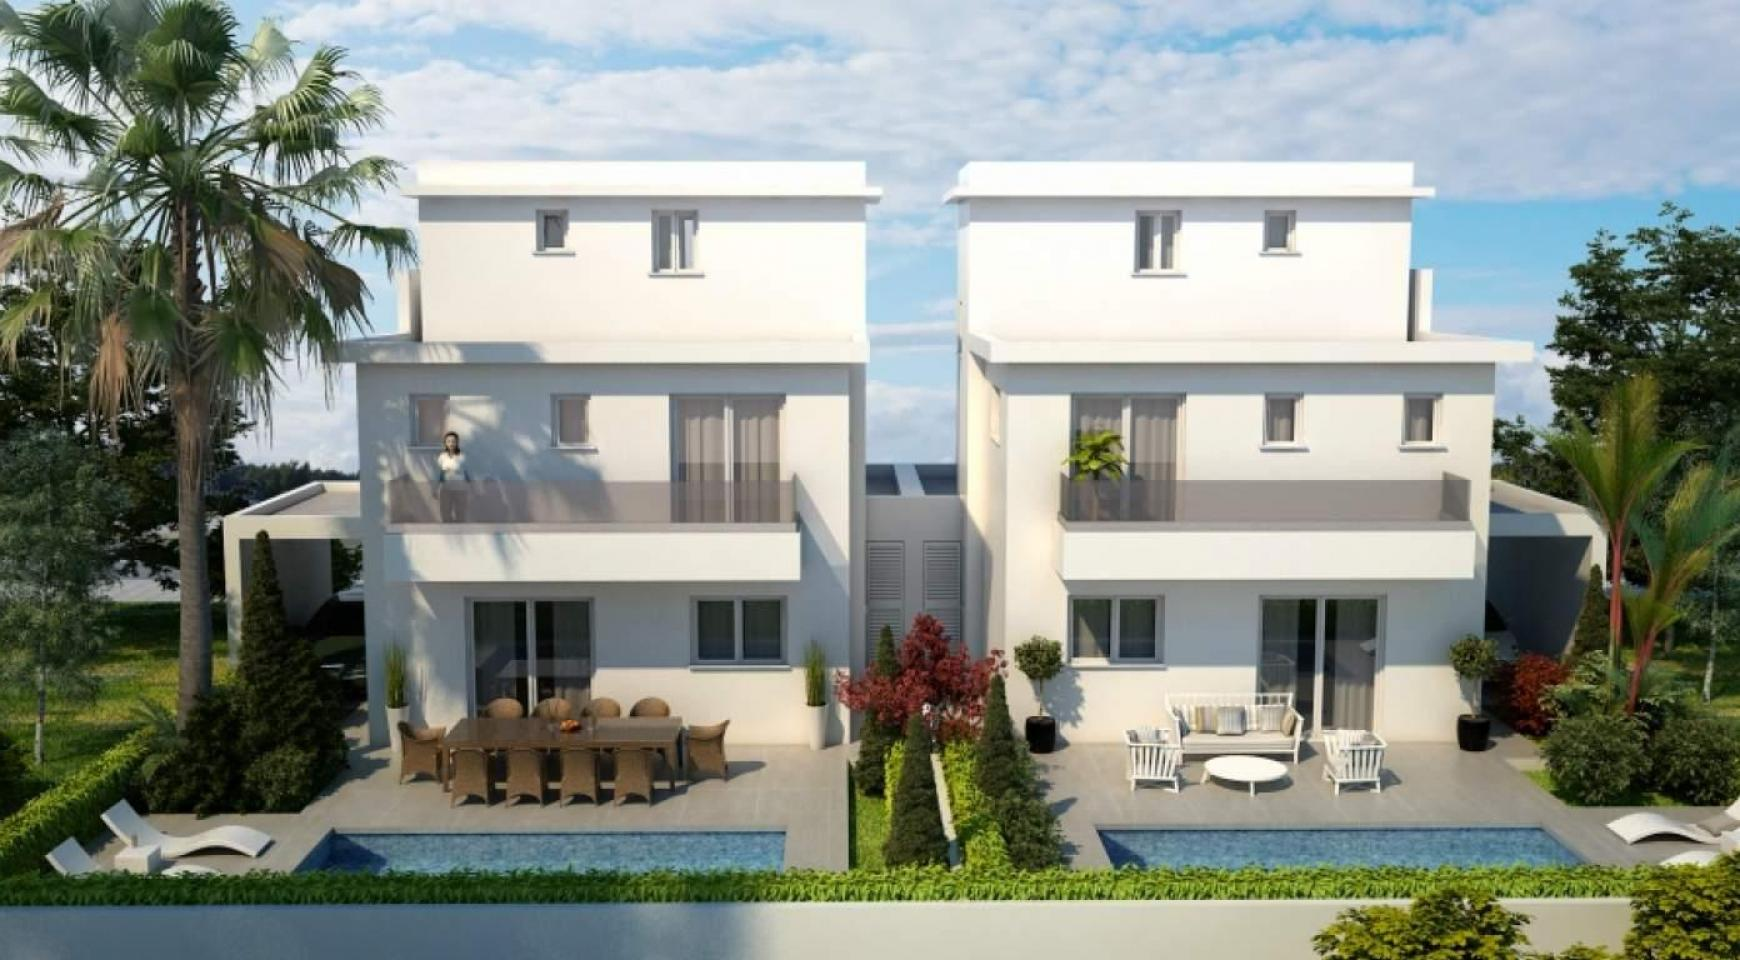 New Modern 4 Bedroom House in Leivadia Area - 5